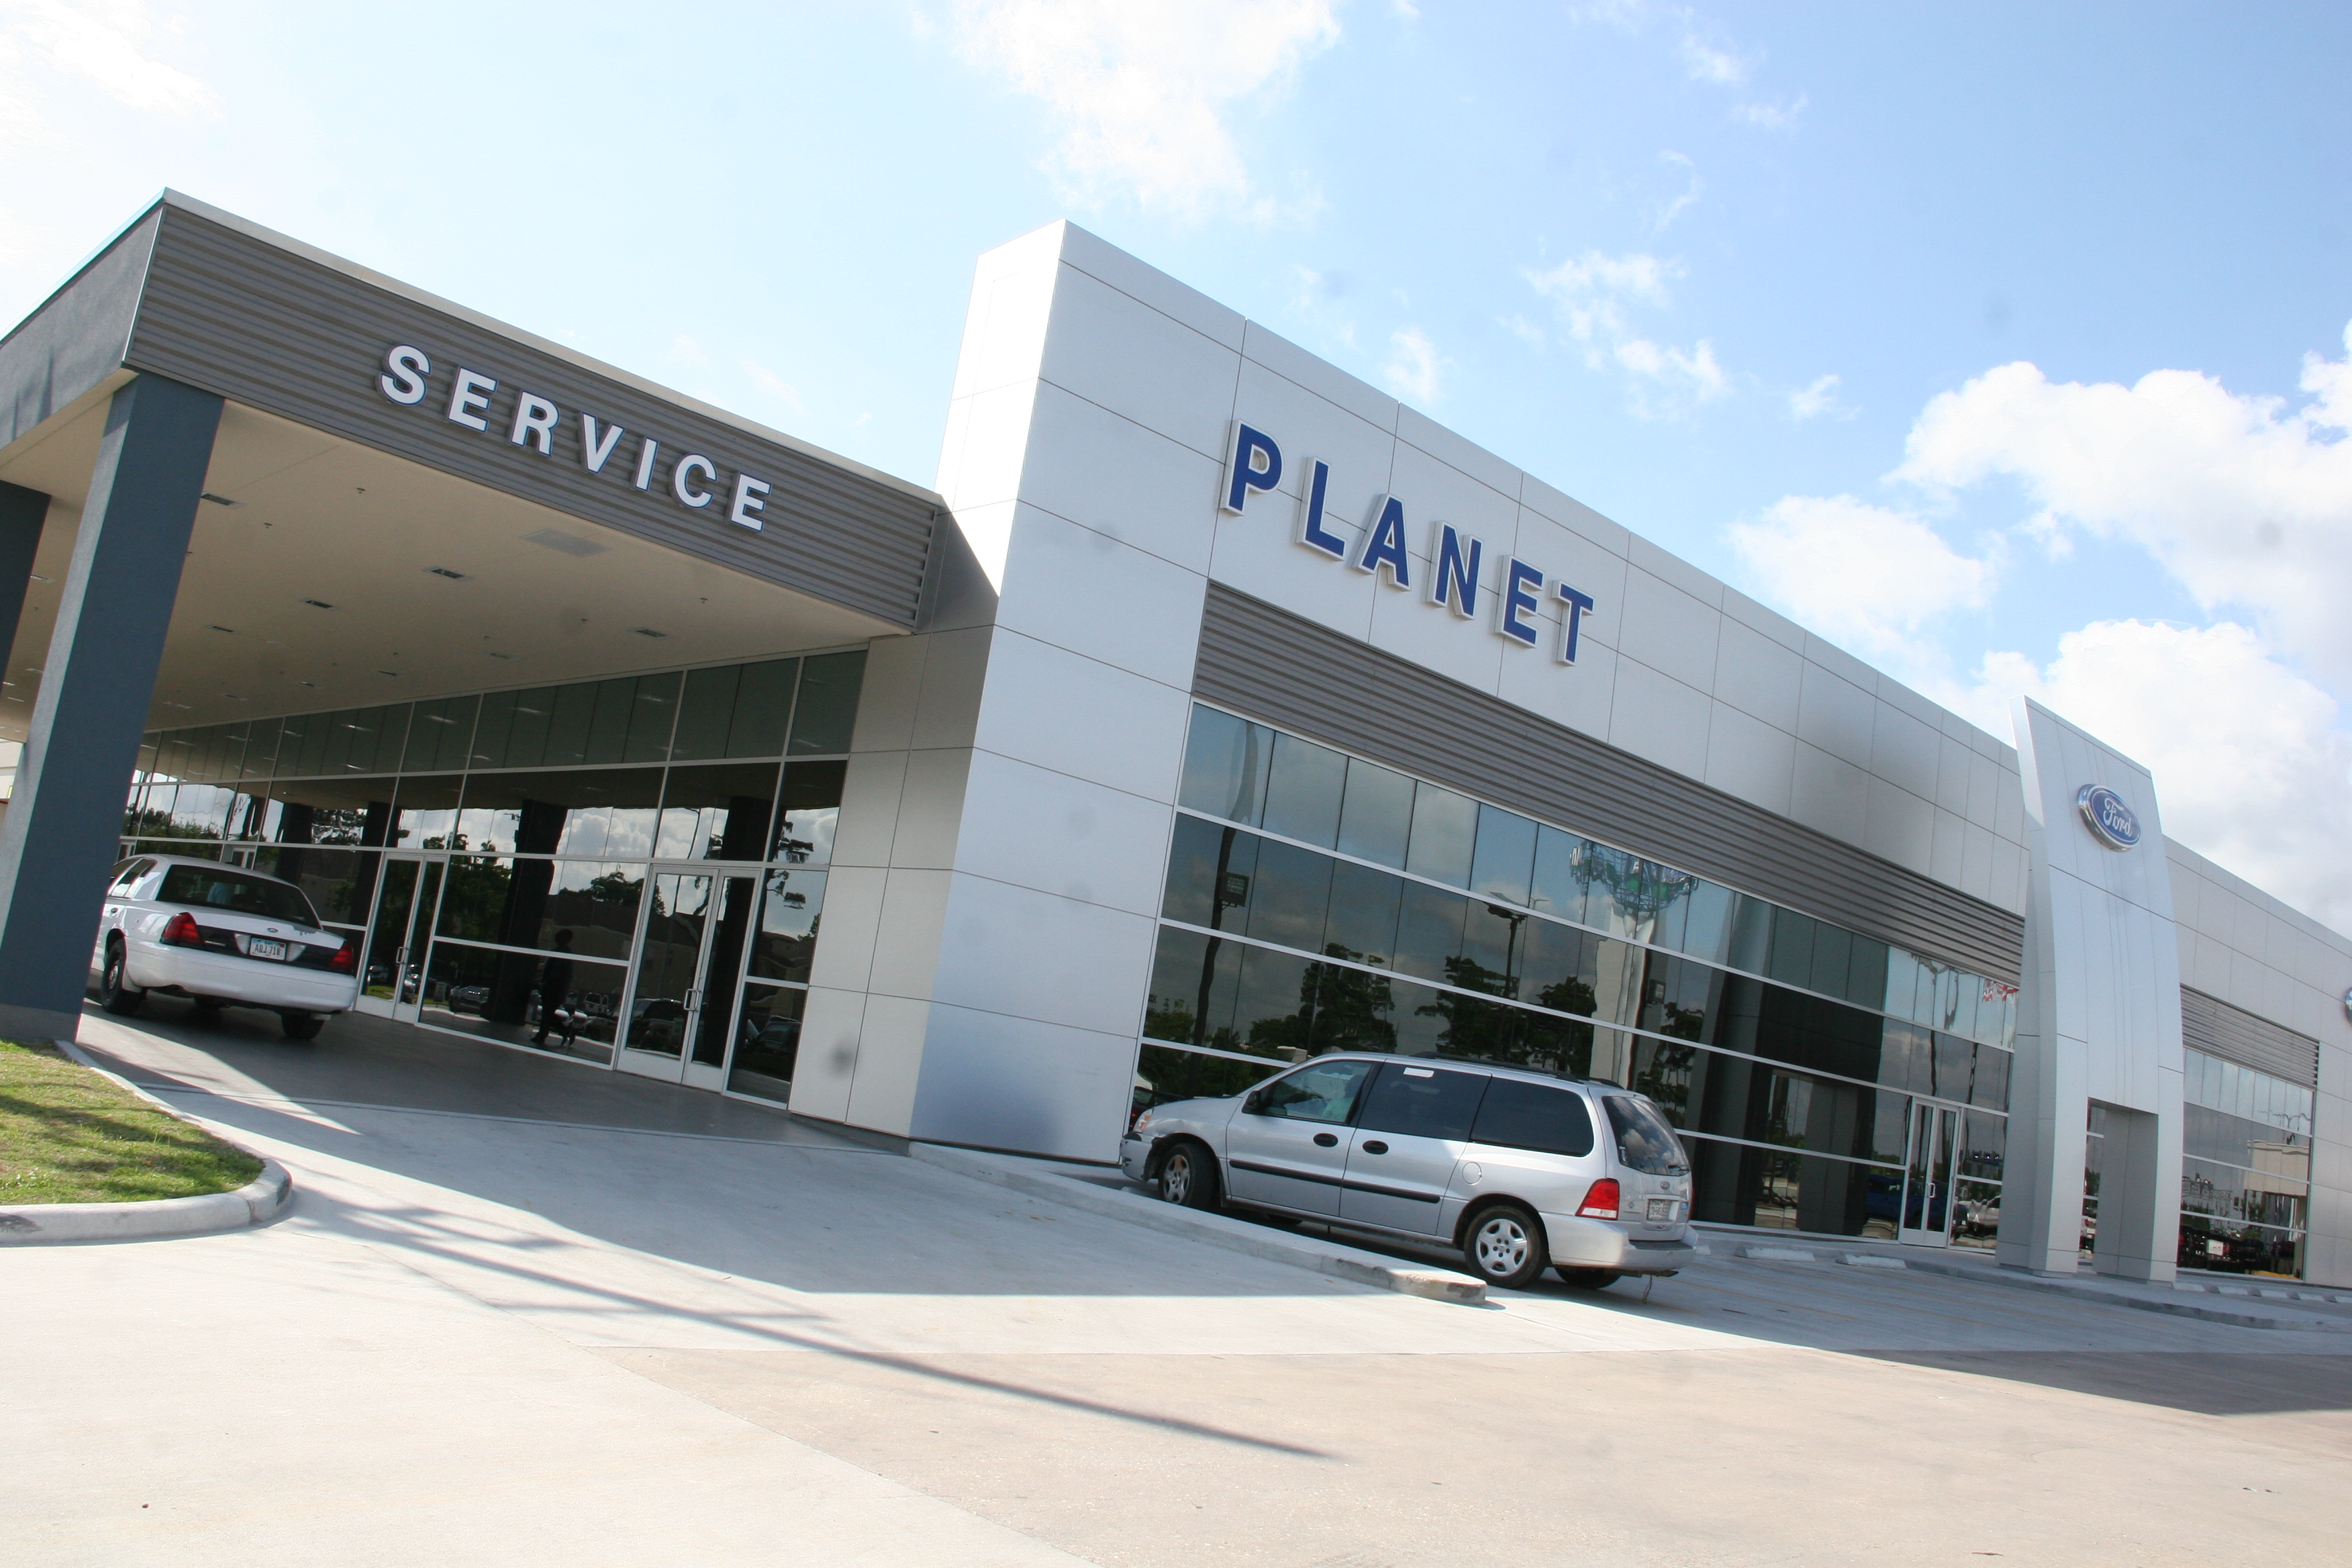 Planet Ford 59 >> Planet Ford Reveals Ford Showroom, Service Drive - Planet Ford 59Planet Ford 59